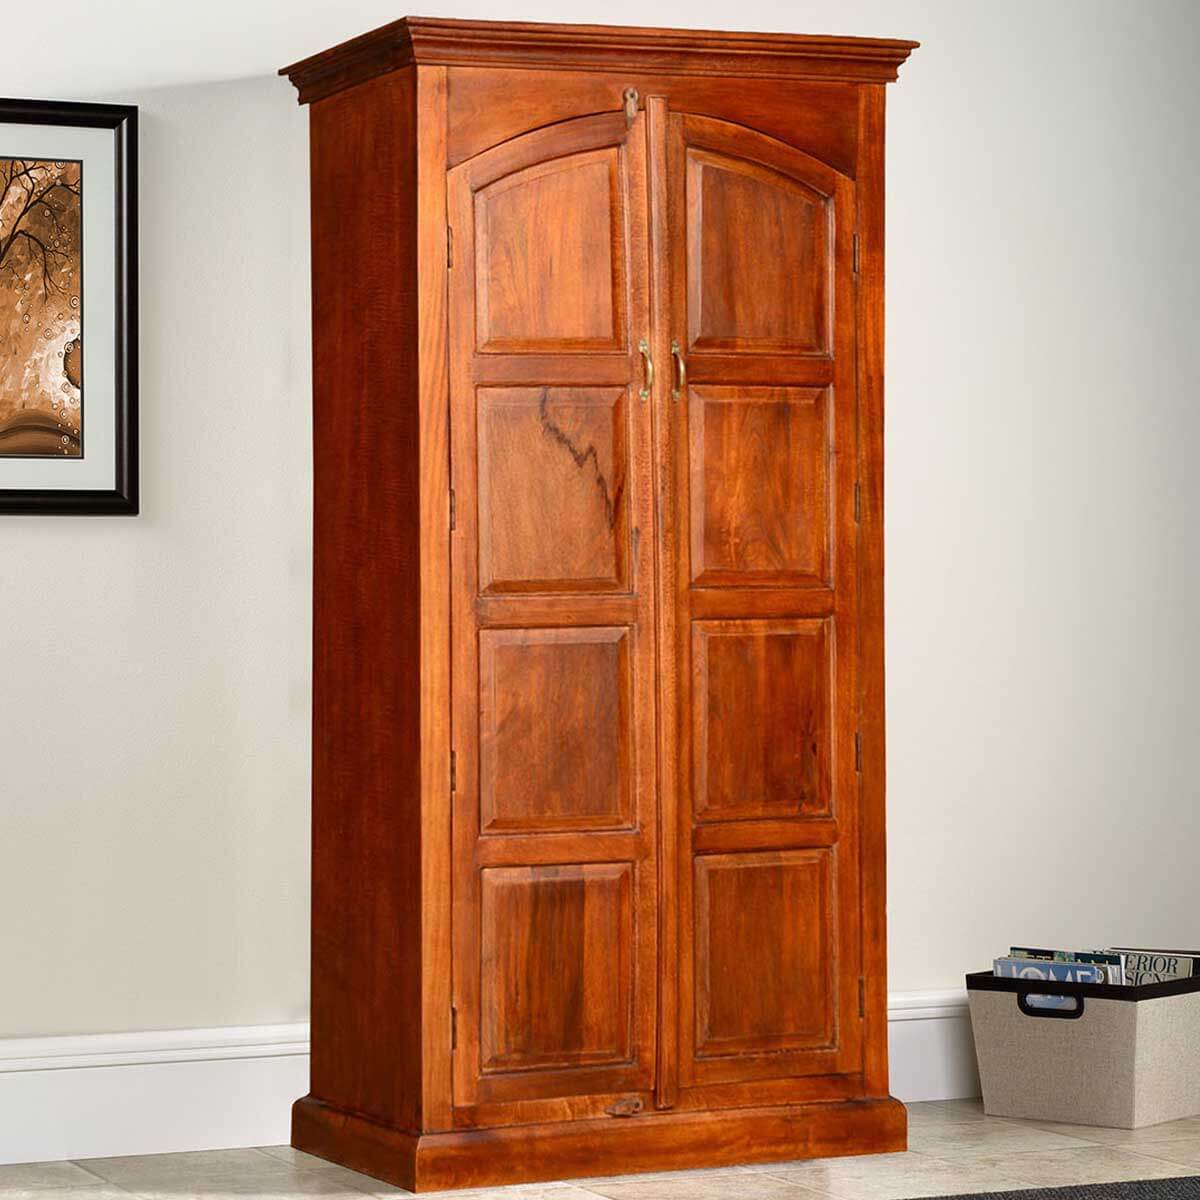 Pennsylvania dutch mango wood quot wardrobe armoire cabinet